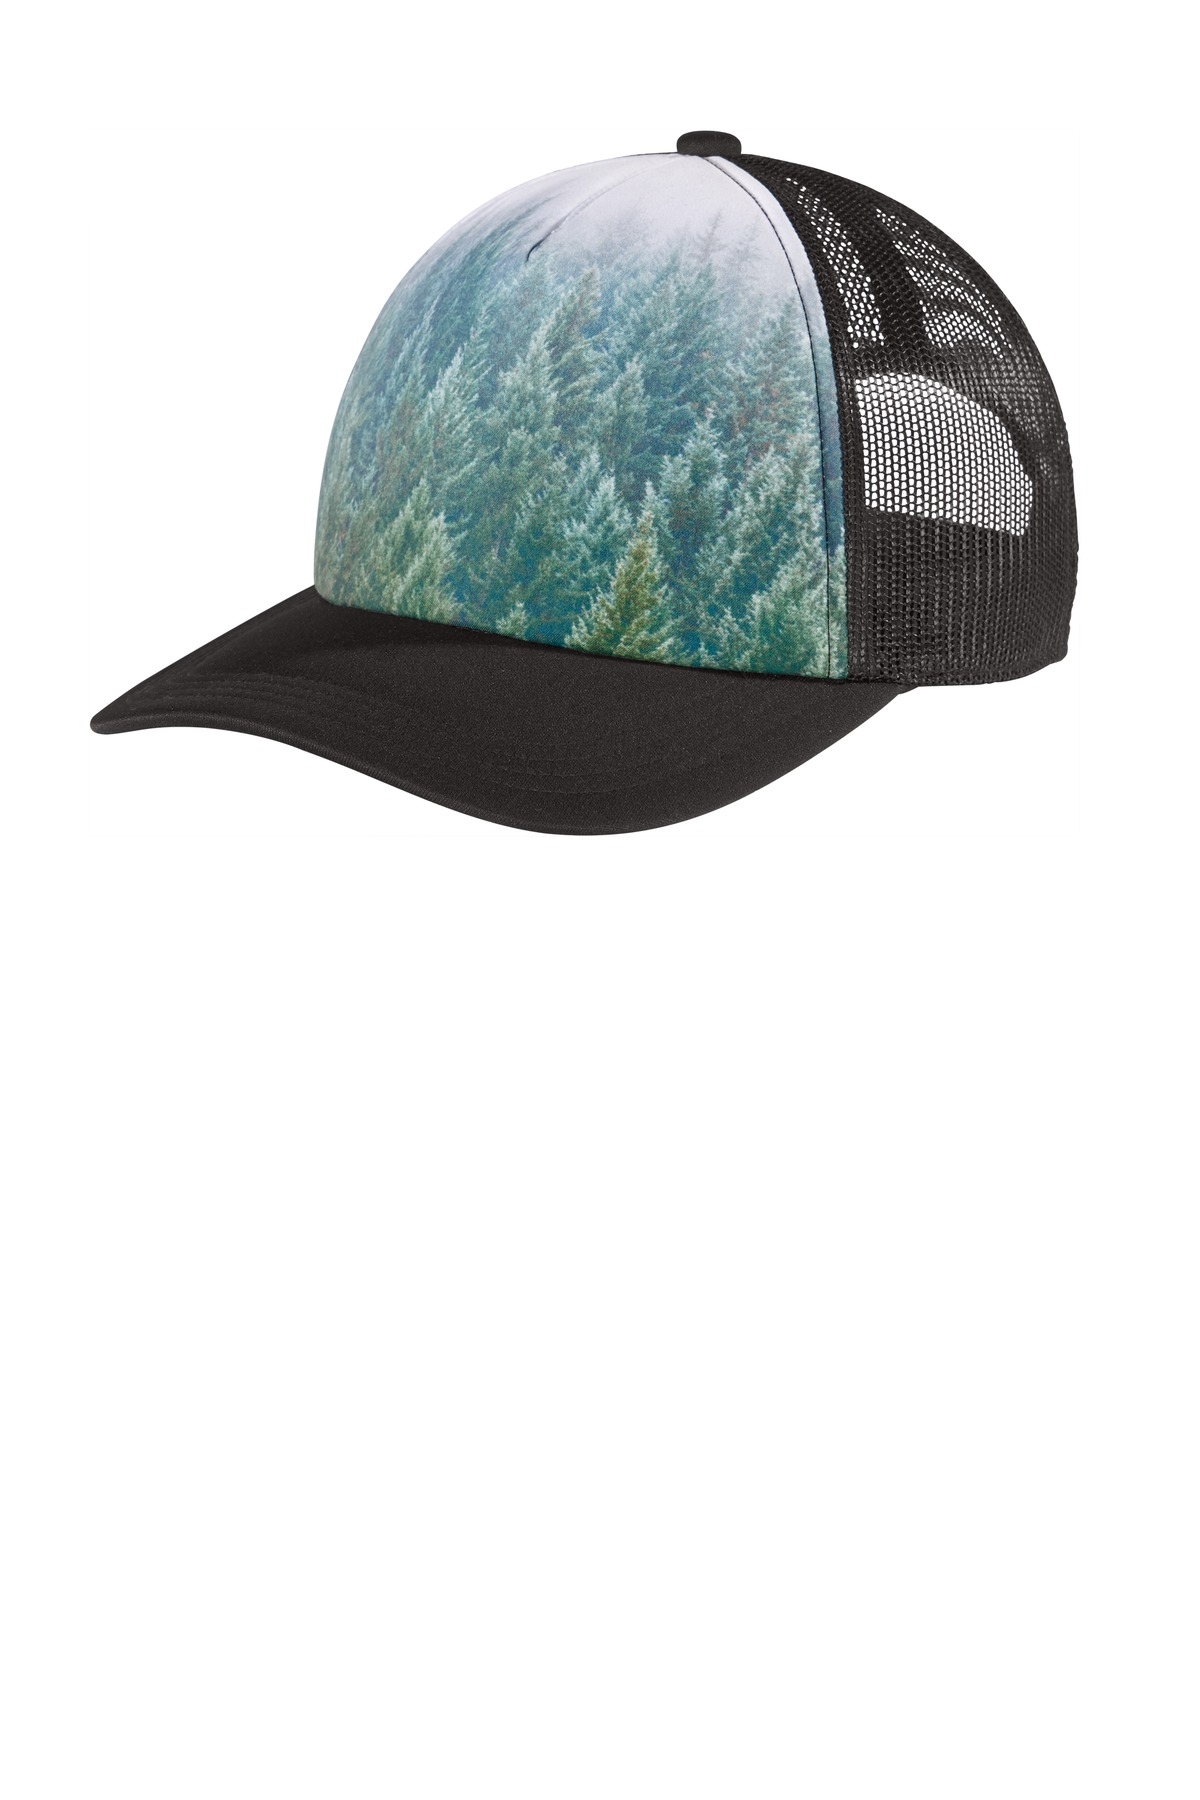 Port Authority  ®  Photo Real Snapback Trucker Cap C950 - Forest